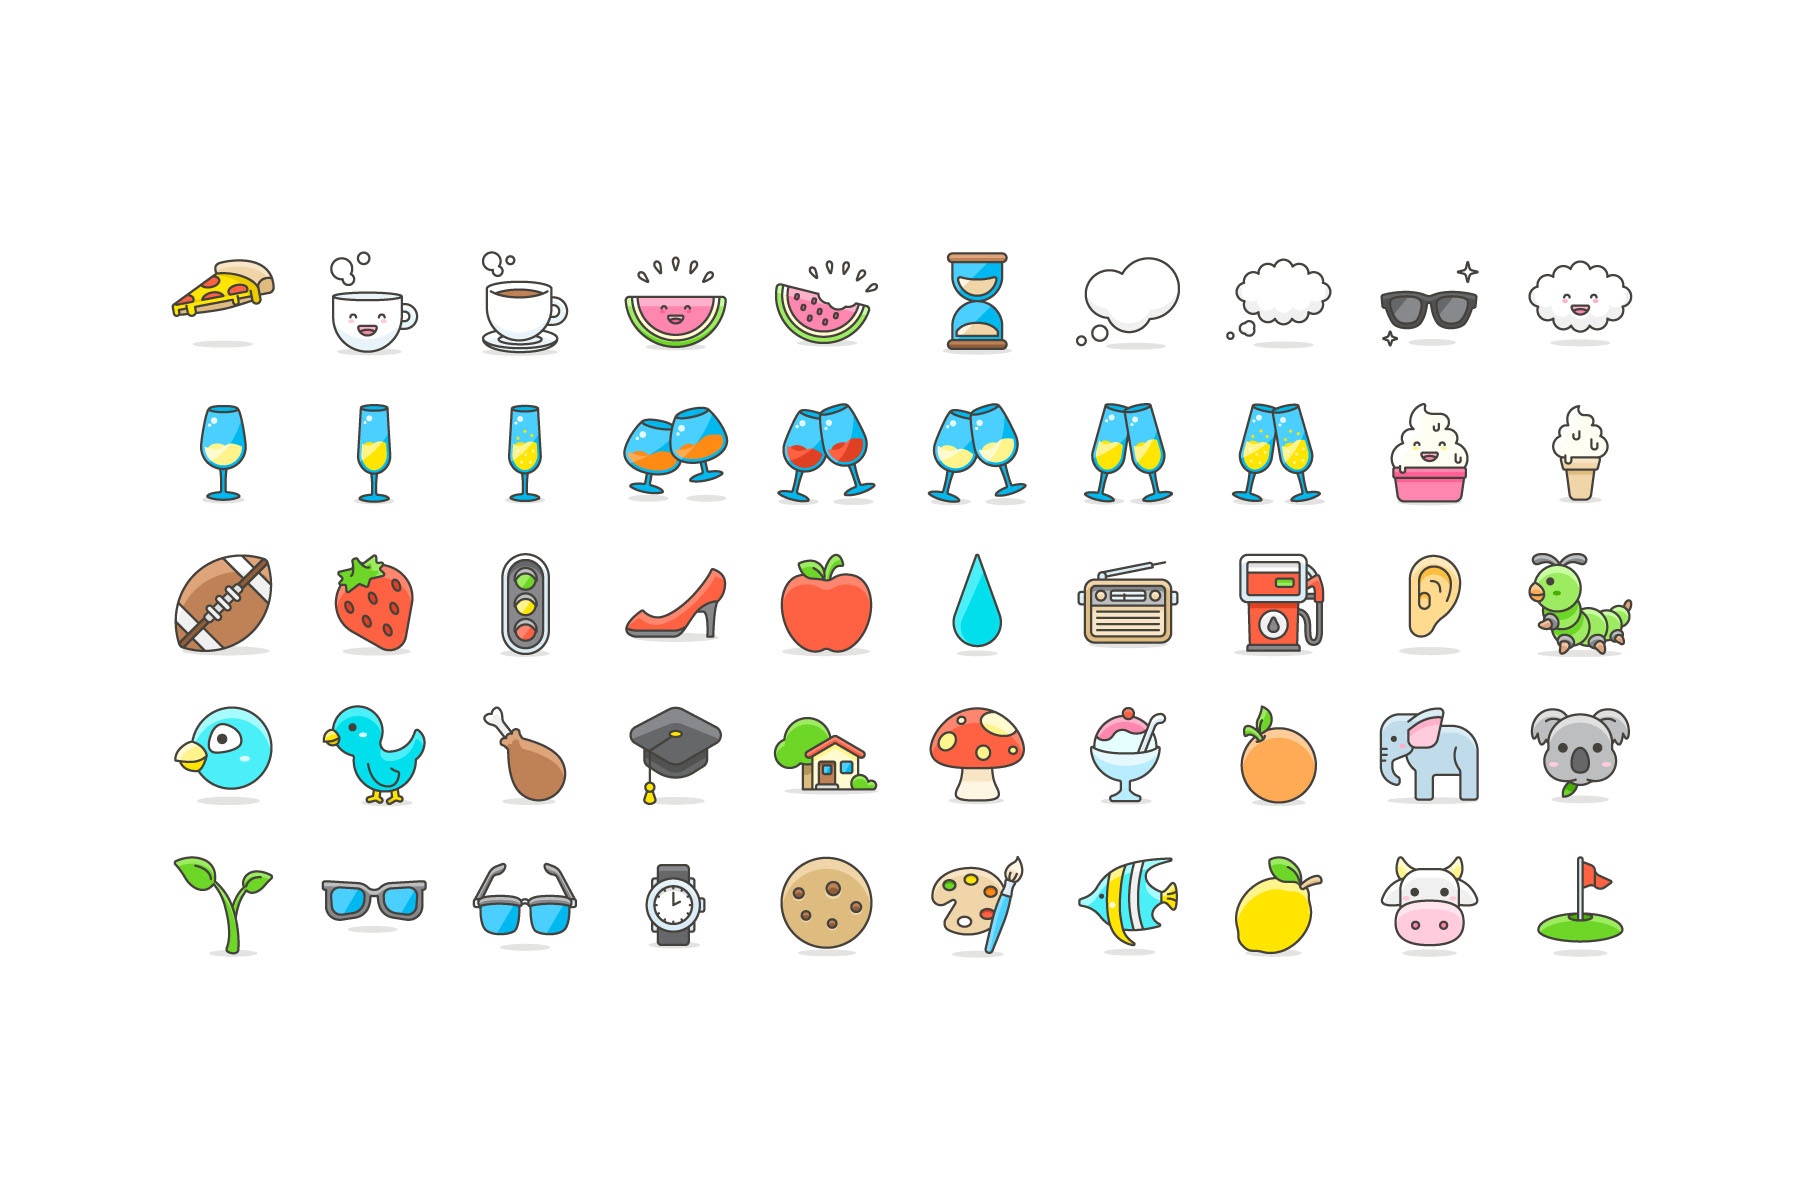 100 Free Vector Cute Emoji